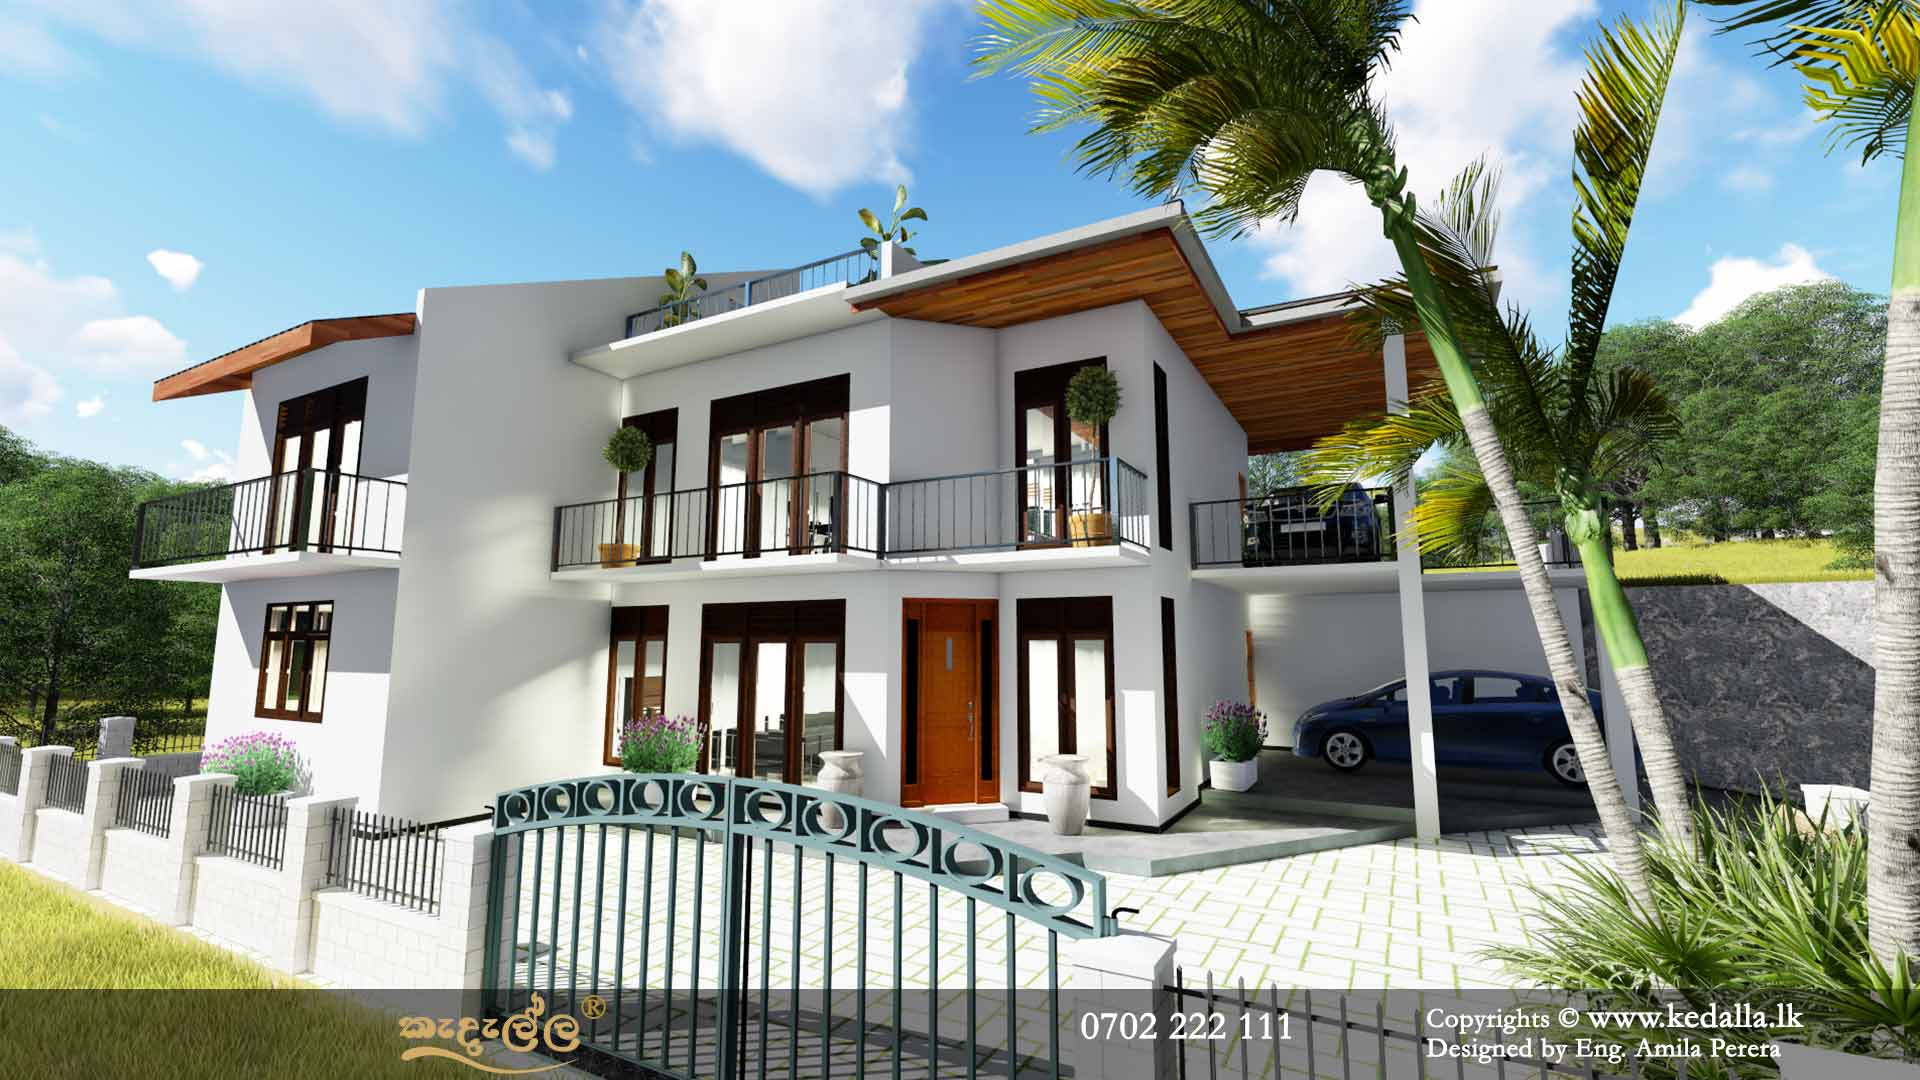 House Plans in Sri Lanka Two Story|3D Home Plans|Kedella